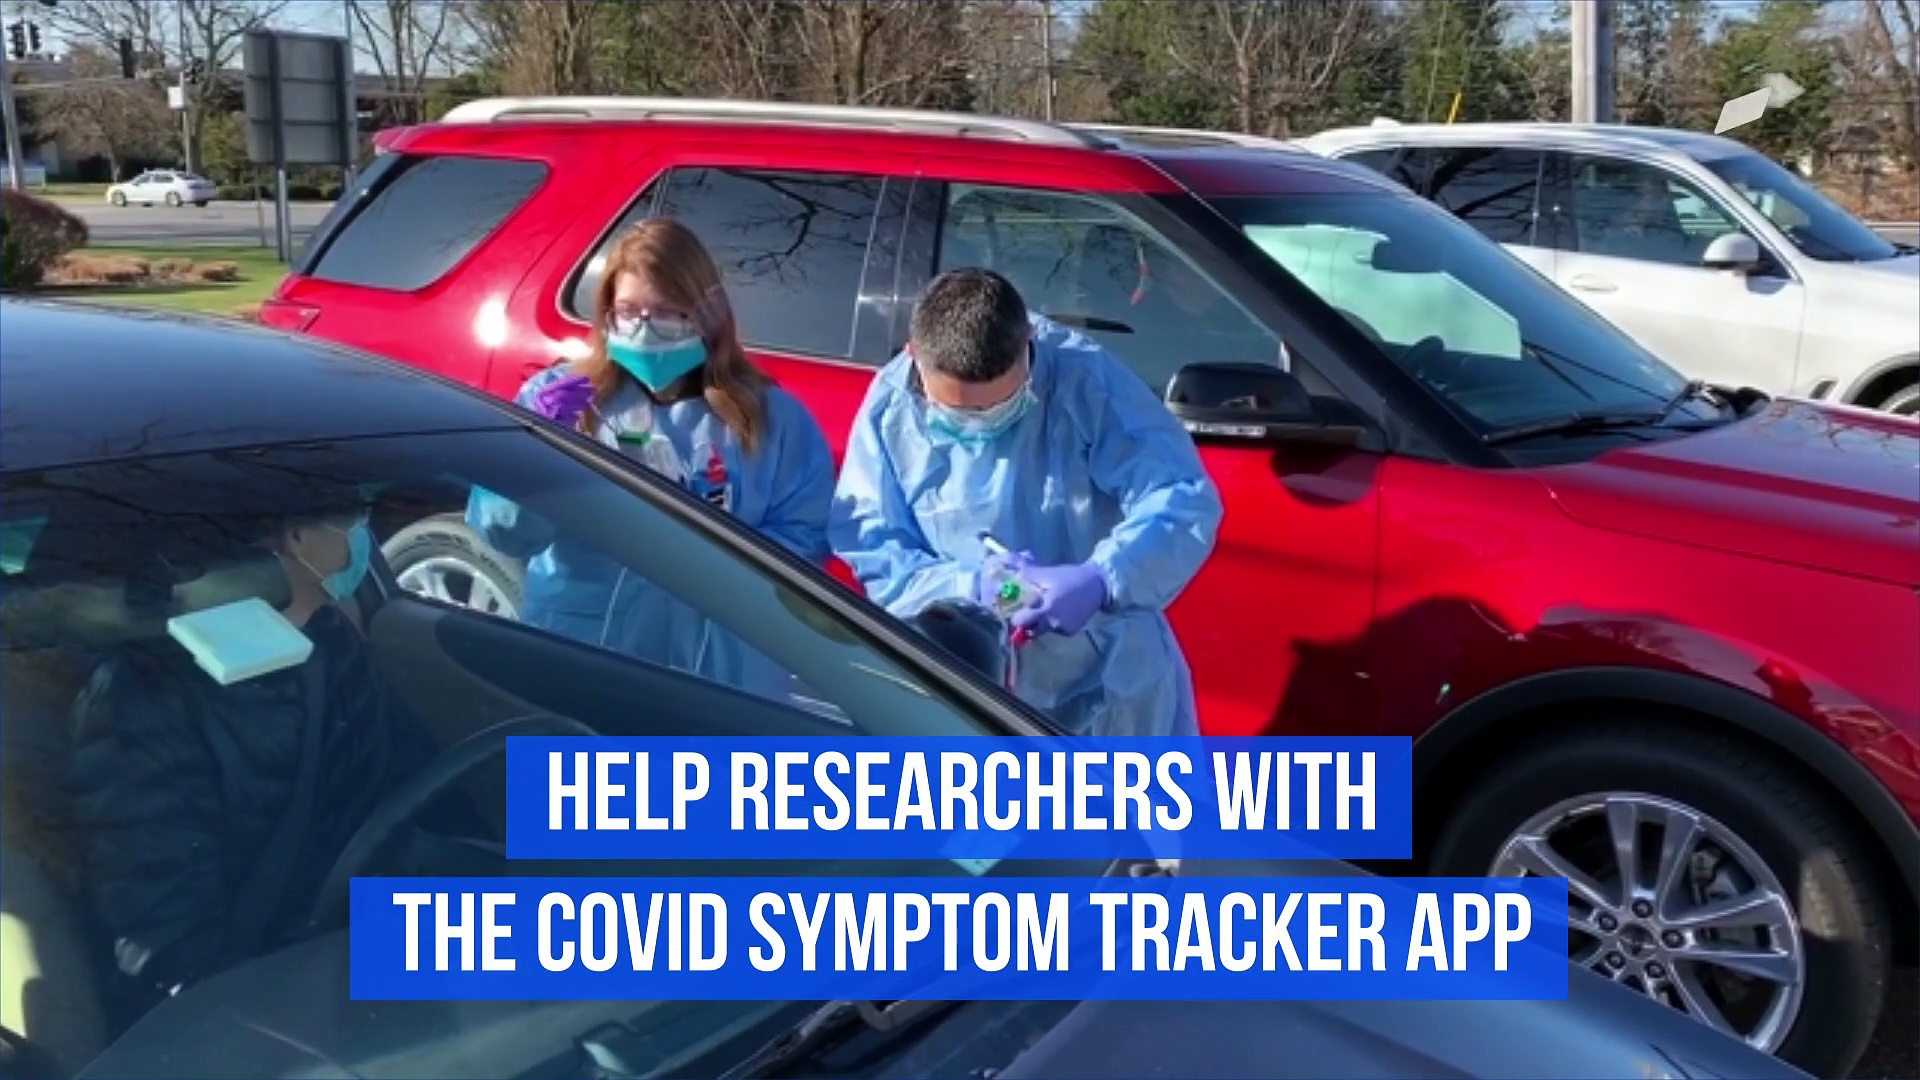 Help Researchers With The COVID Symptom Tracker App